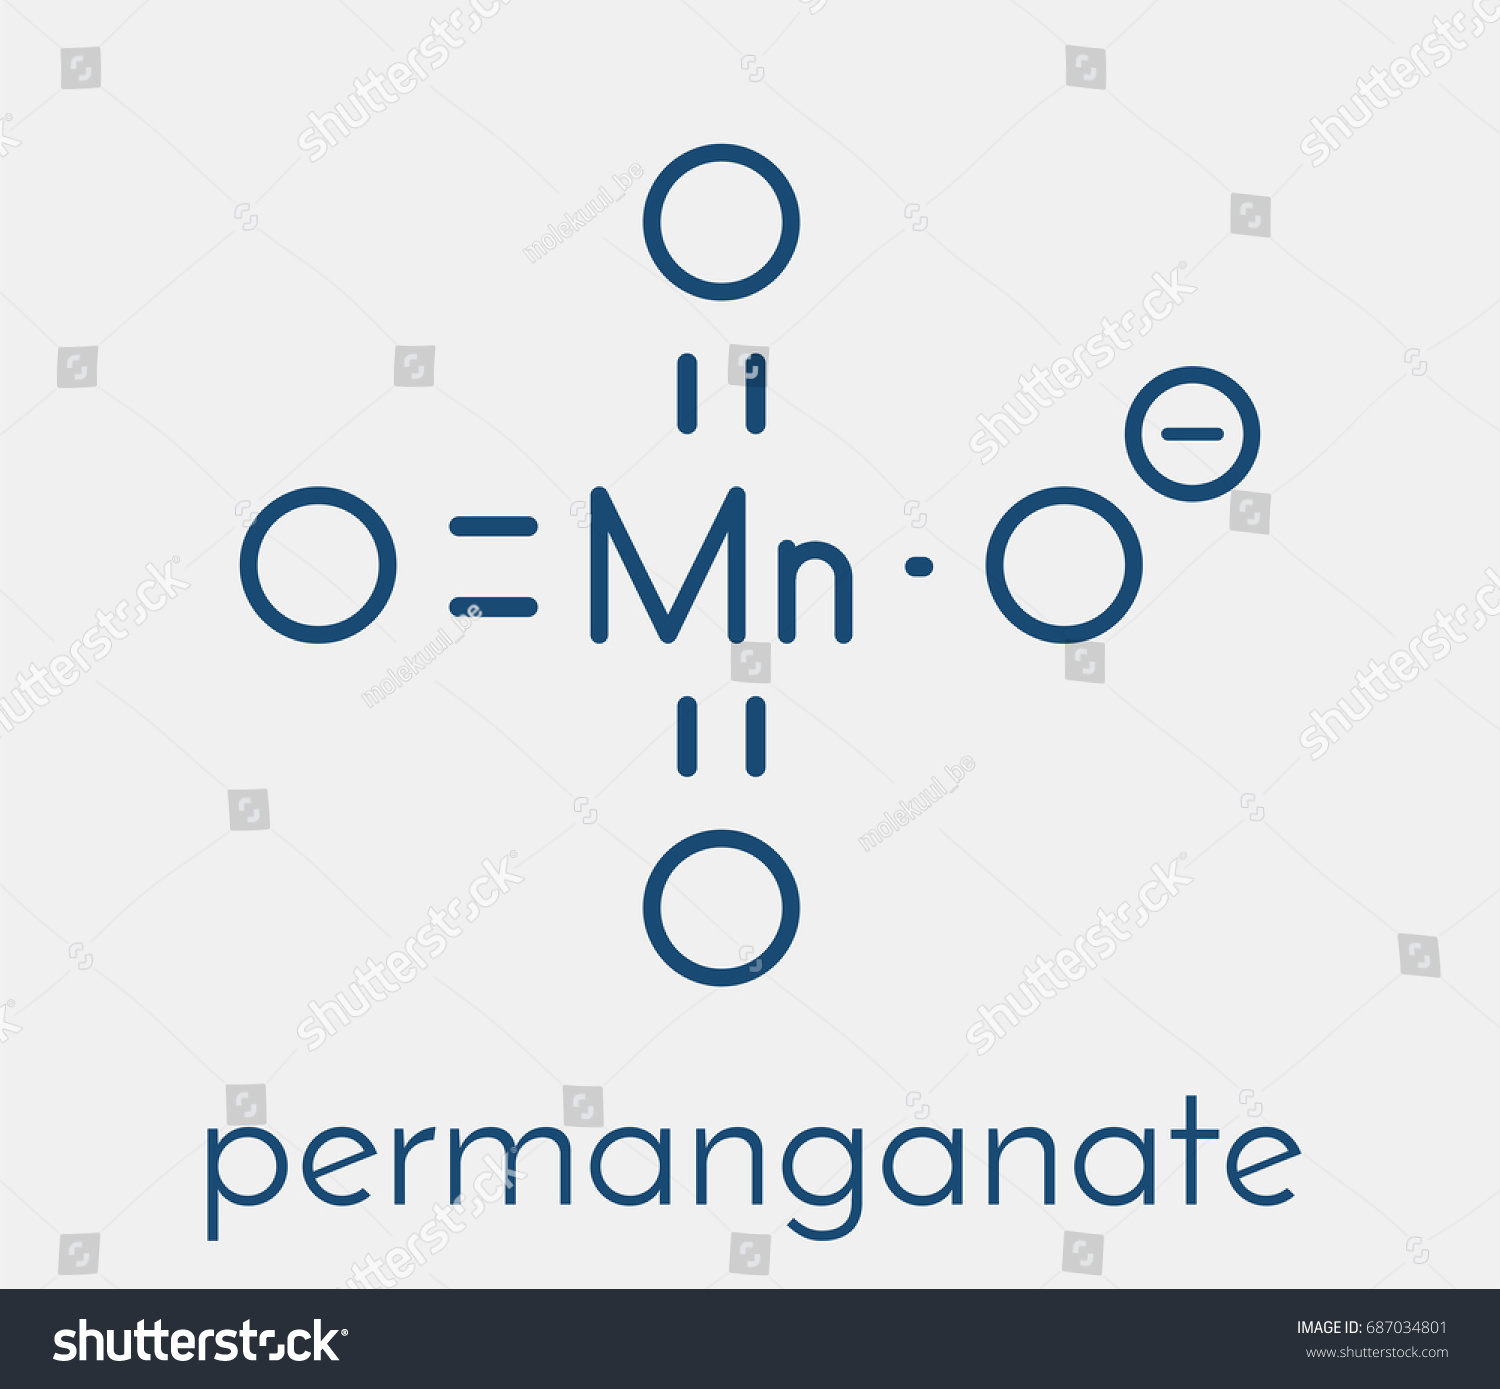 Permanganate anion chemical structure skeletal formula stock permanganate anion chemical structure skeletal formula buycottarizona